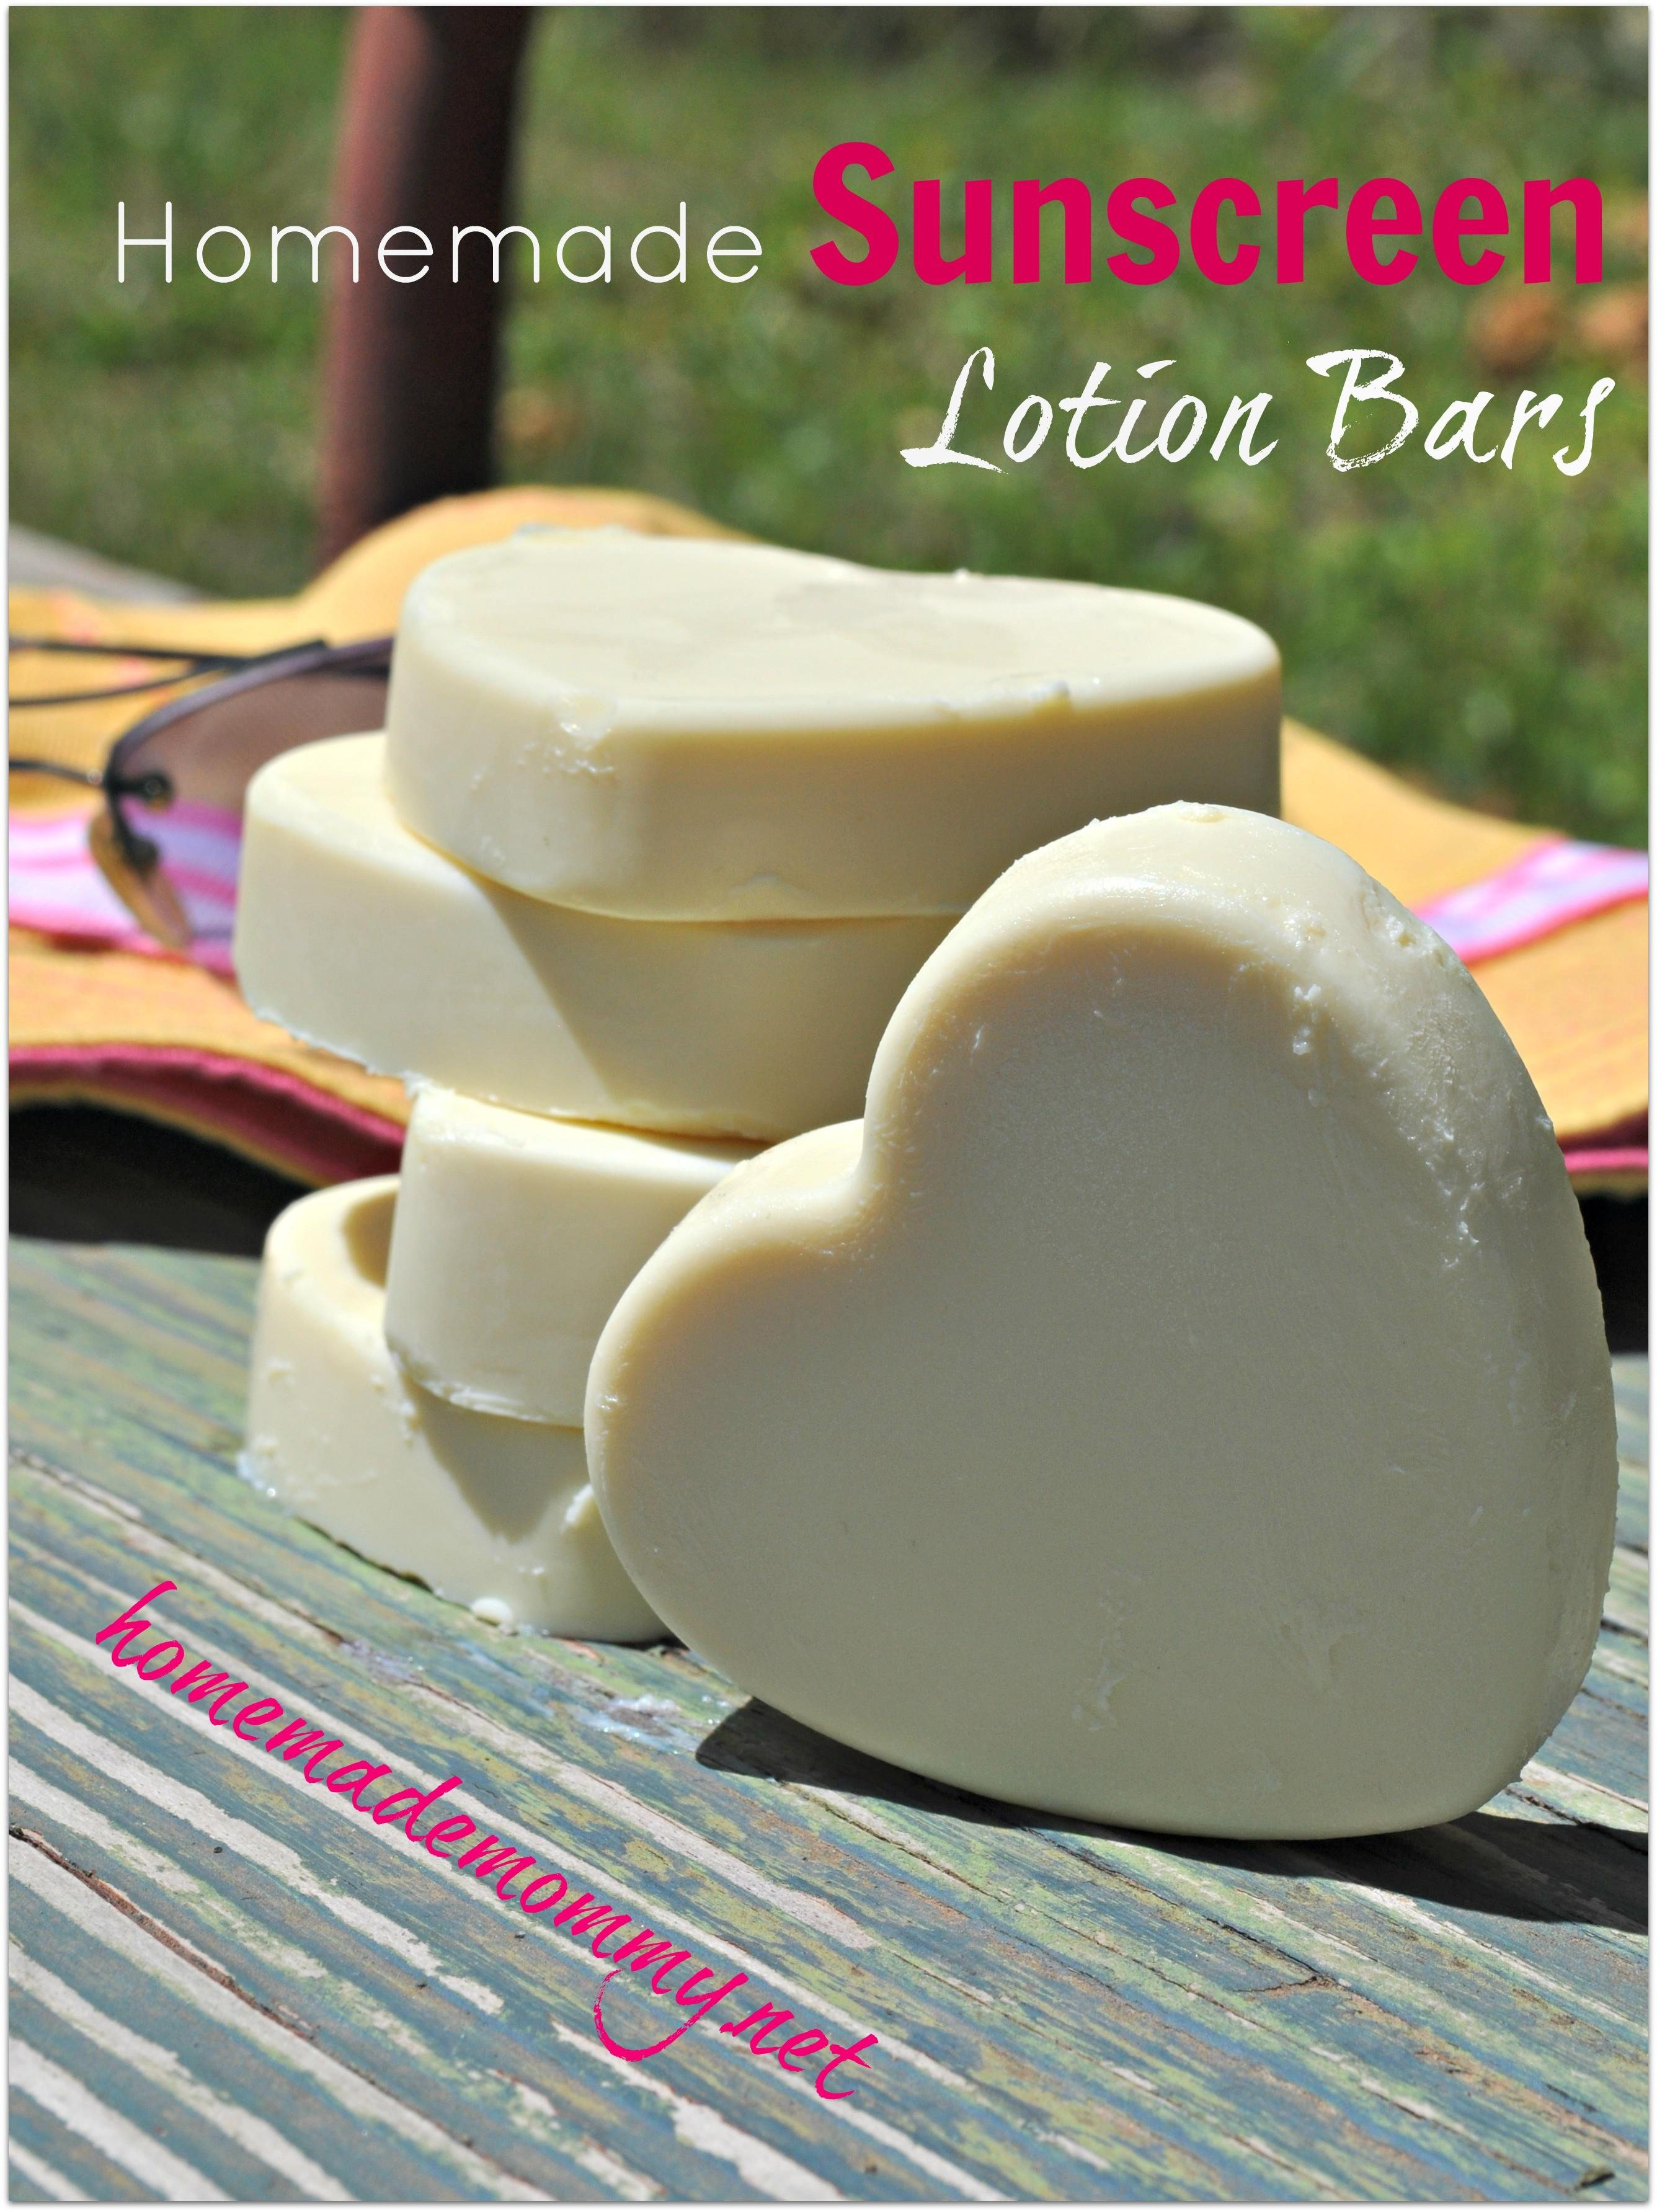 Homemade Sunscreen Lotion Bars